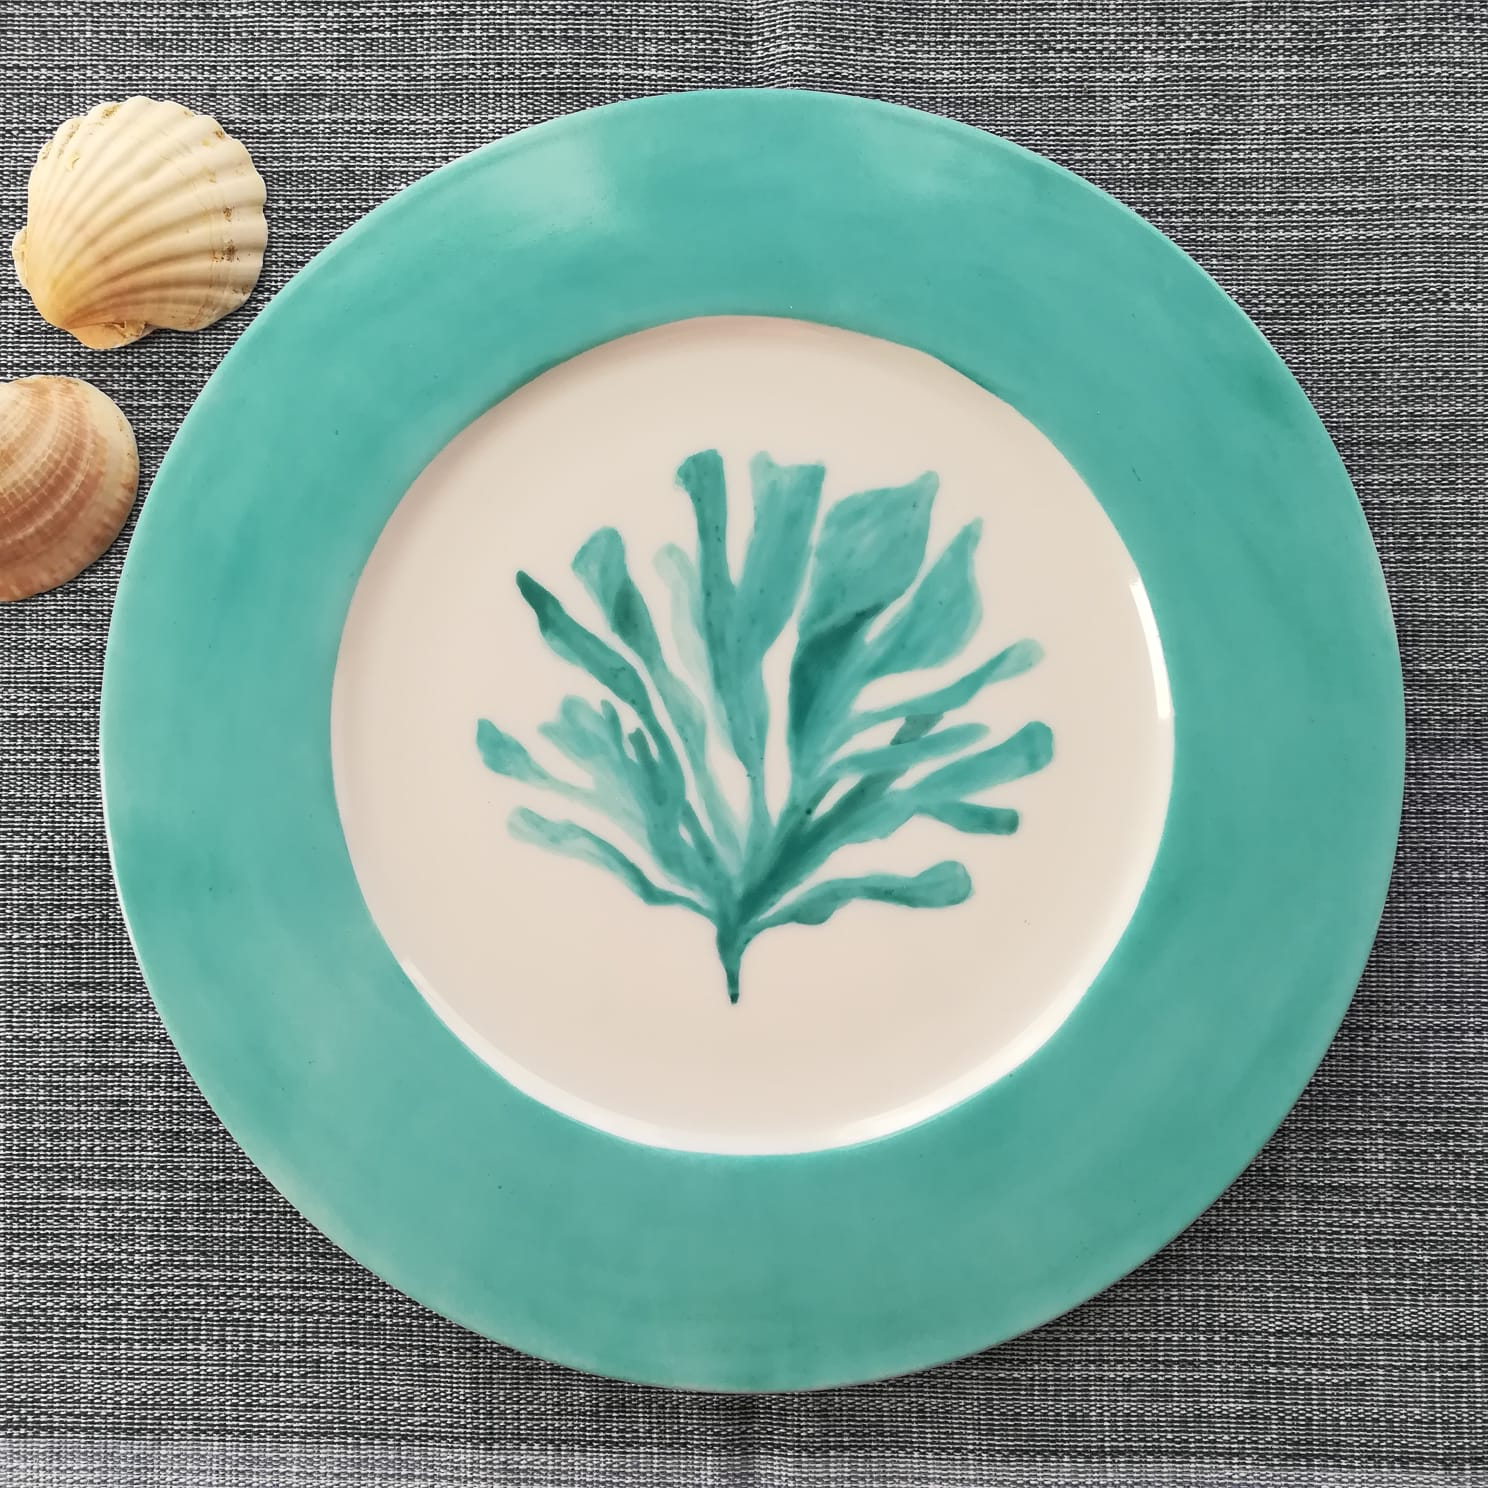 Coral dinner plate